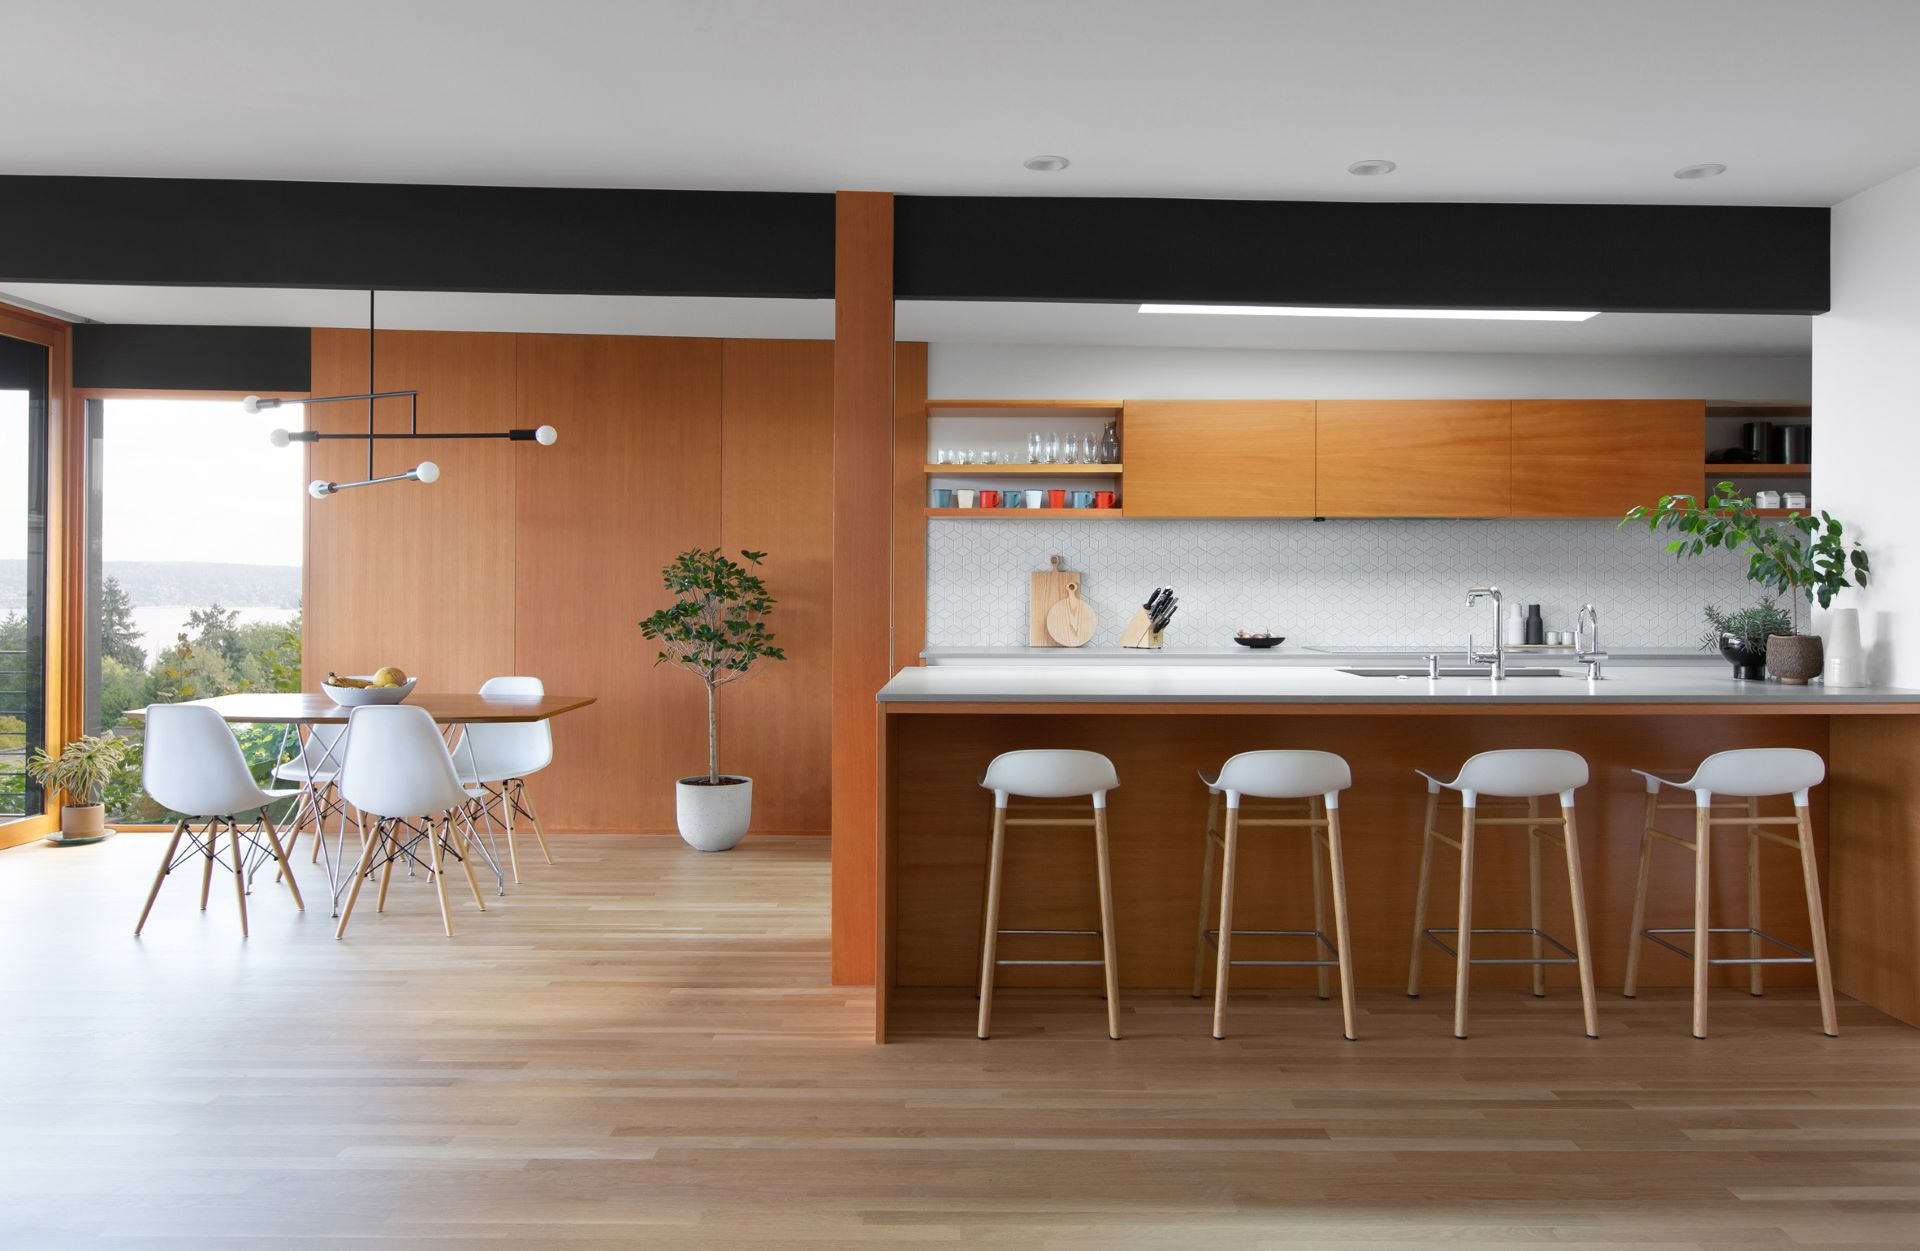 Open kitchen and dining area in darker shades of wood with white chairs and stools matched with metal lights